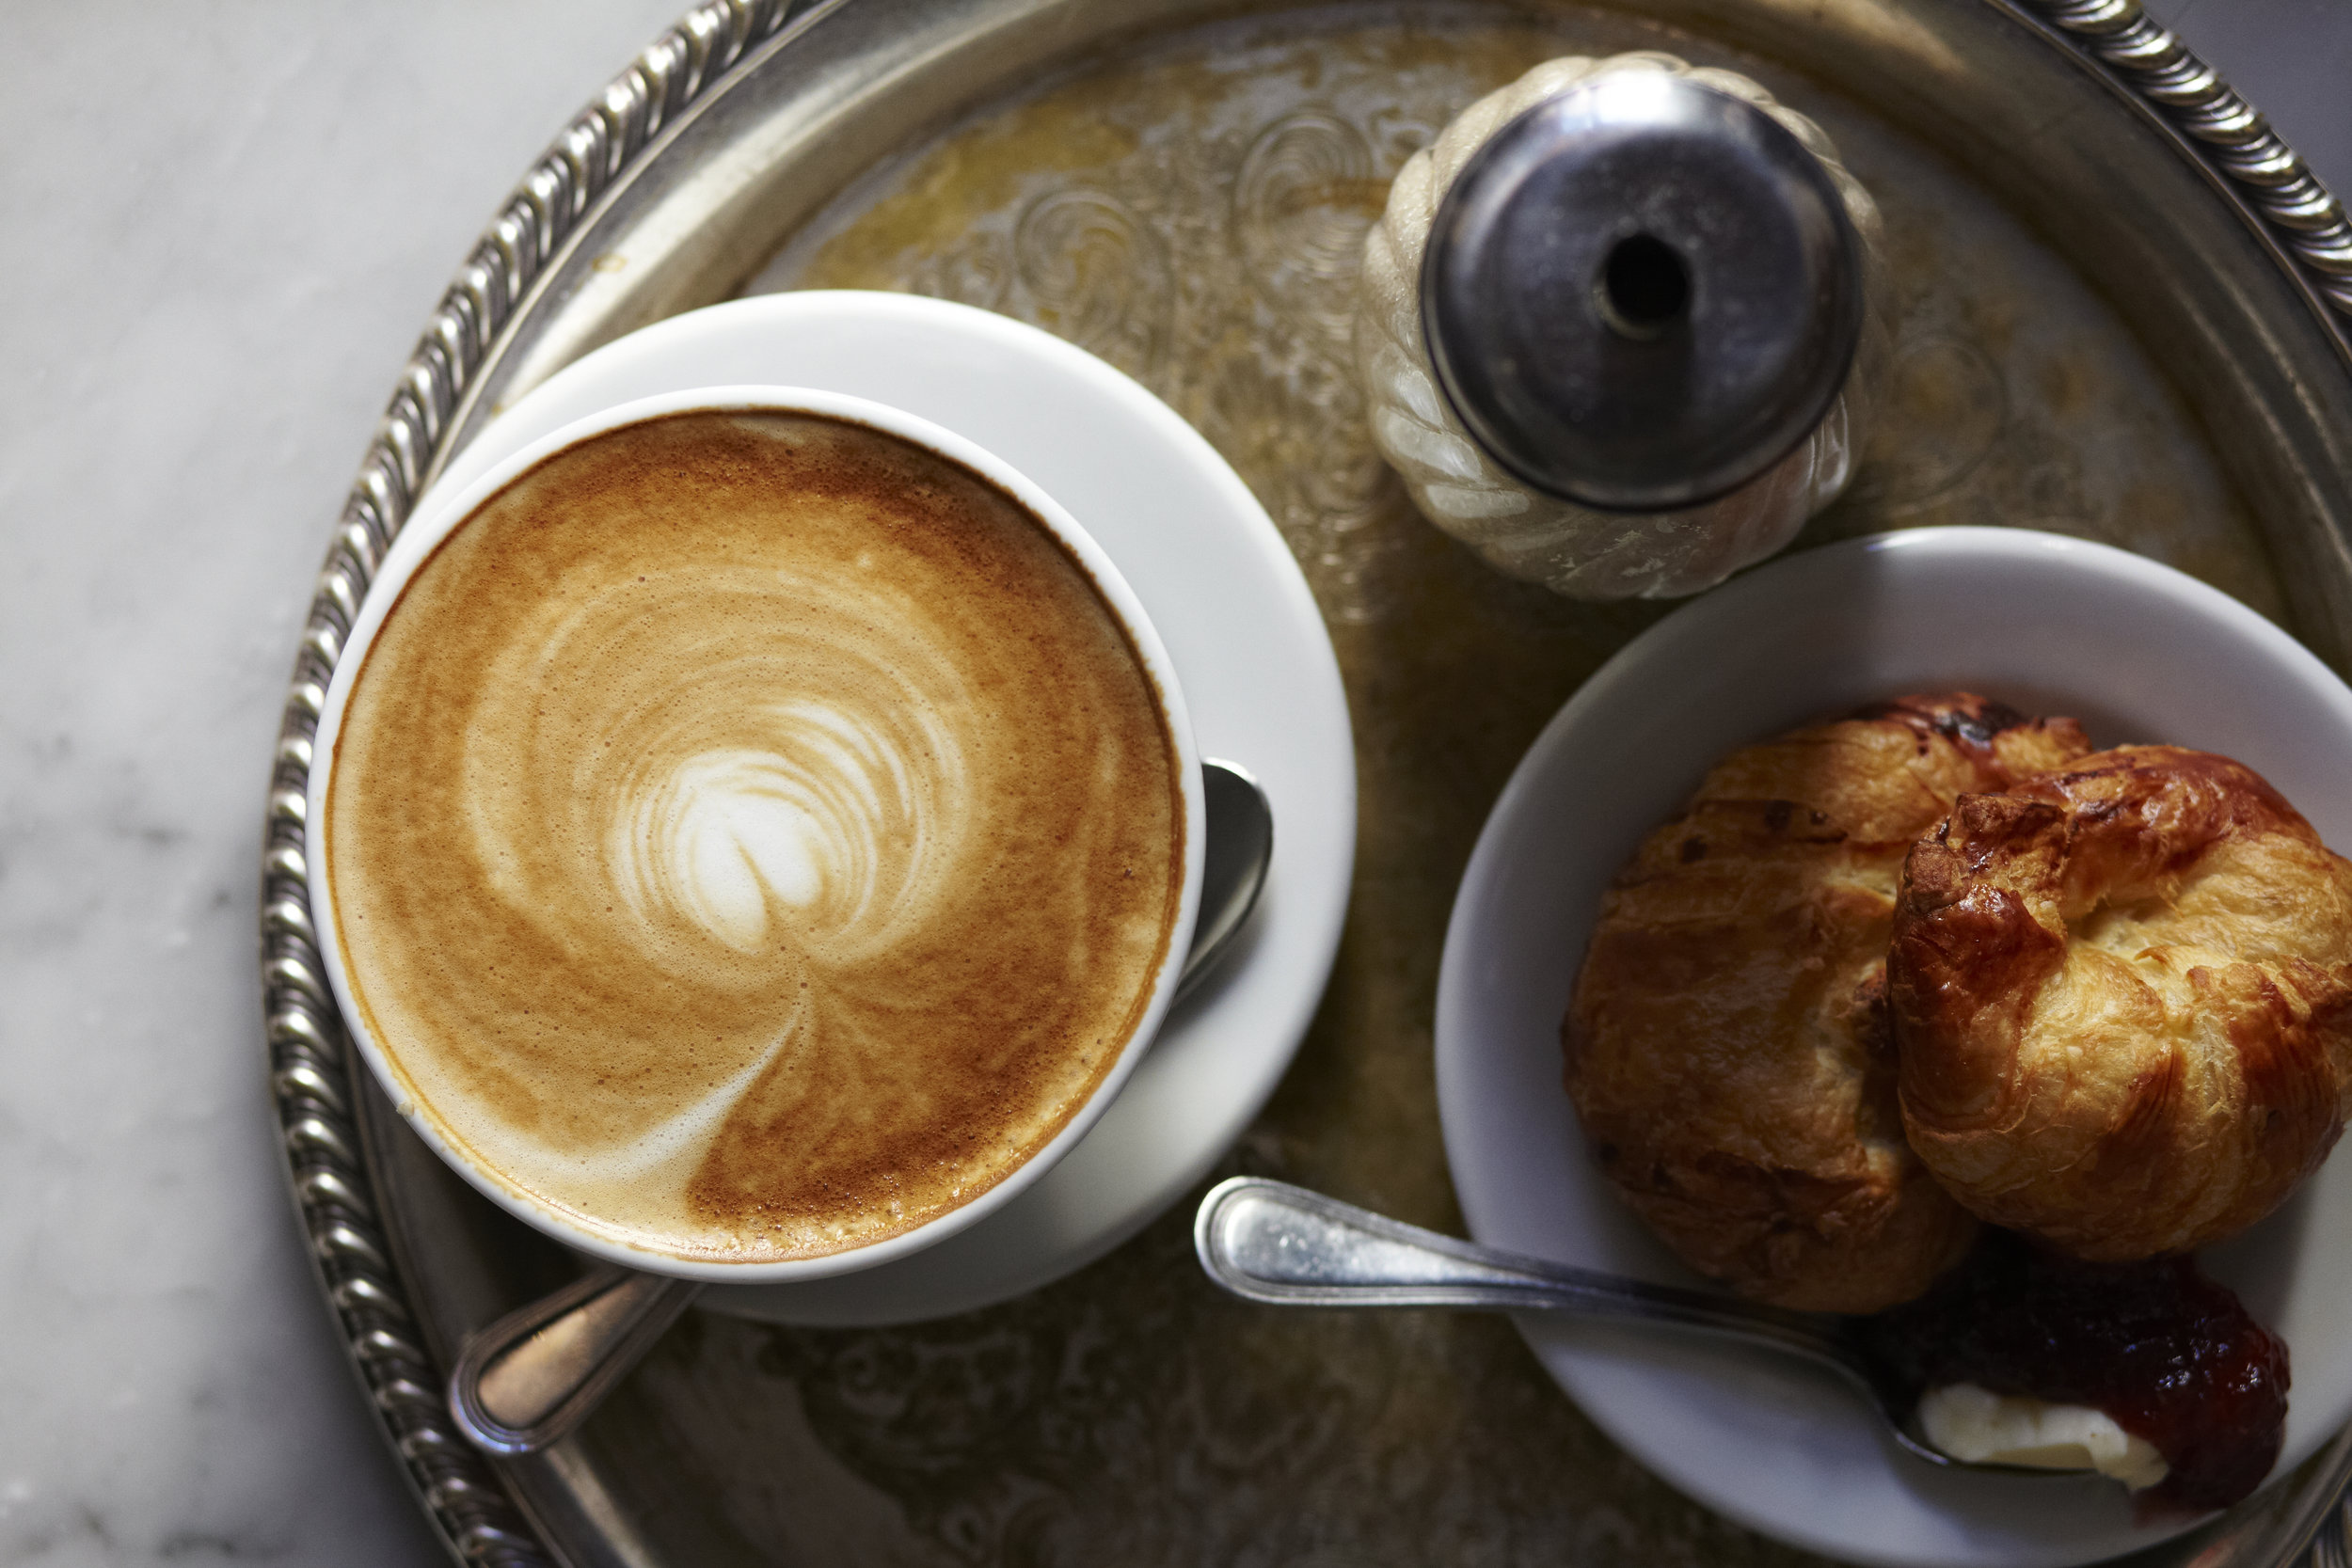 Smoko at the Loco - Tuesday to Friday 10am – 11:15amDelectable morning tea delights include homemade scones with whipped cream and jam, interesting cakes and biscuits.